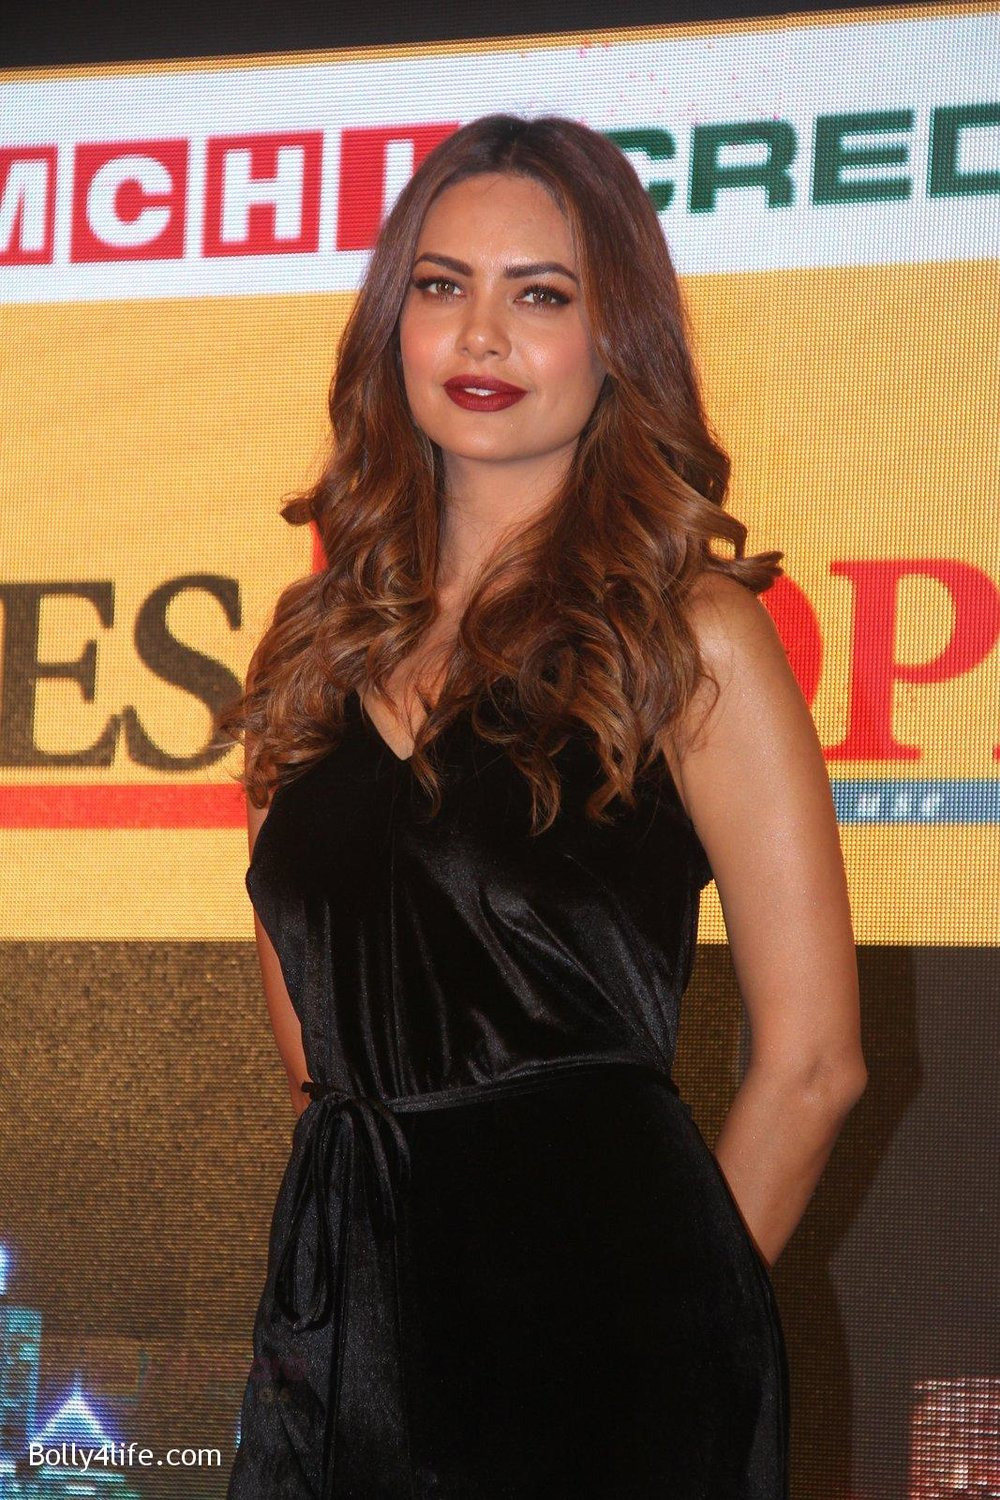 Esha-Gupta-at-Times-Property-event-on-8th-Oct-2016-30.jpg